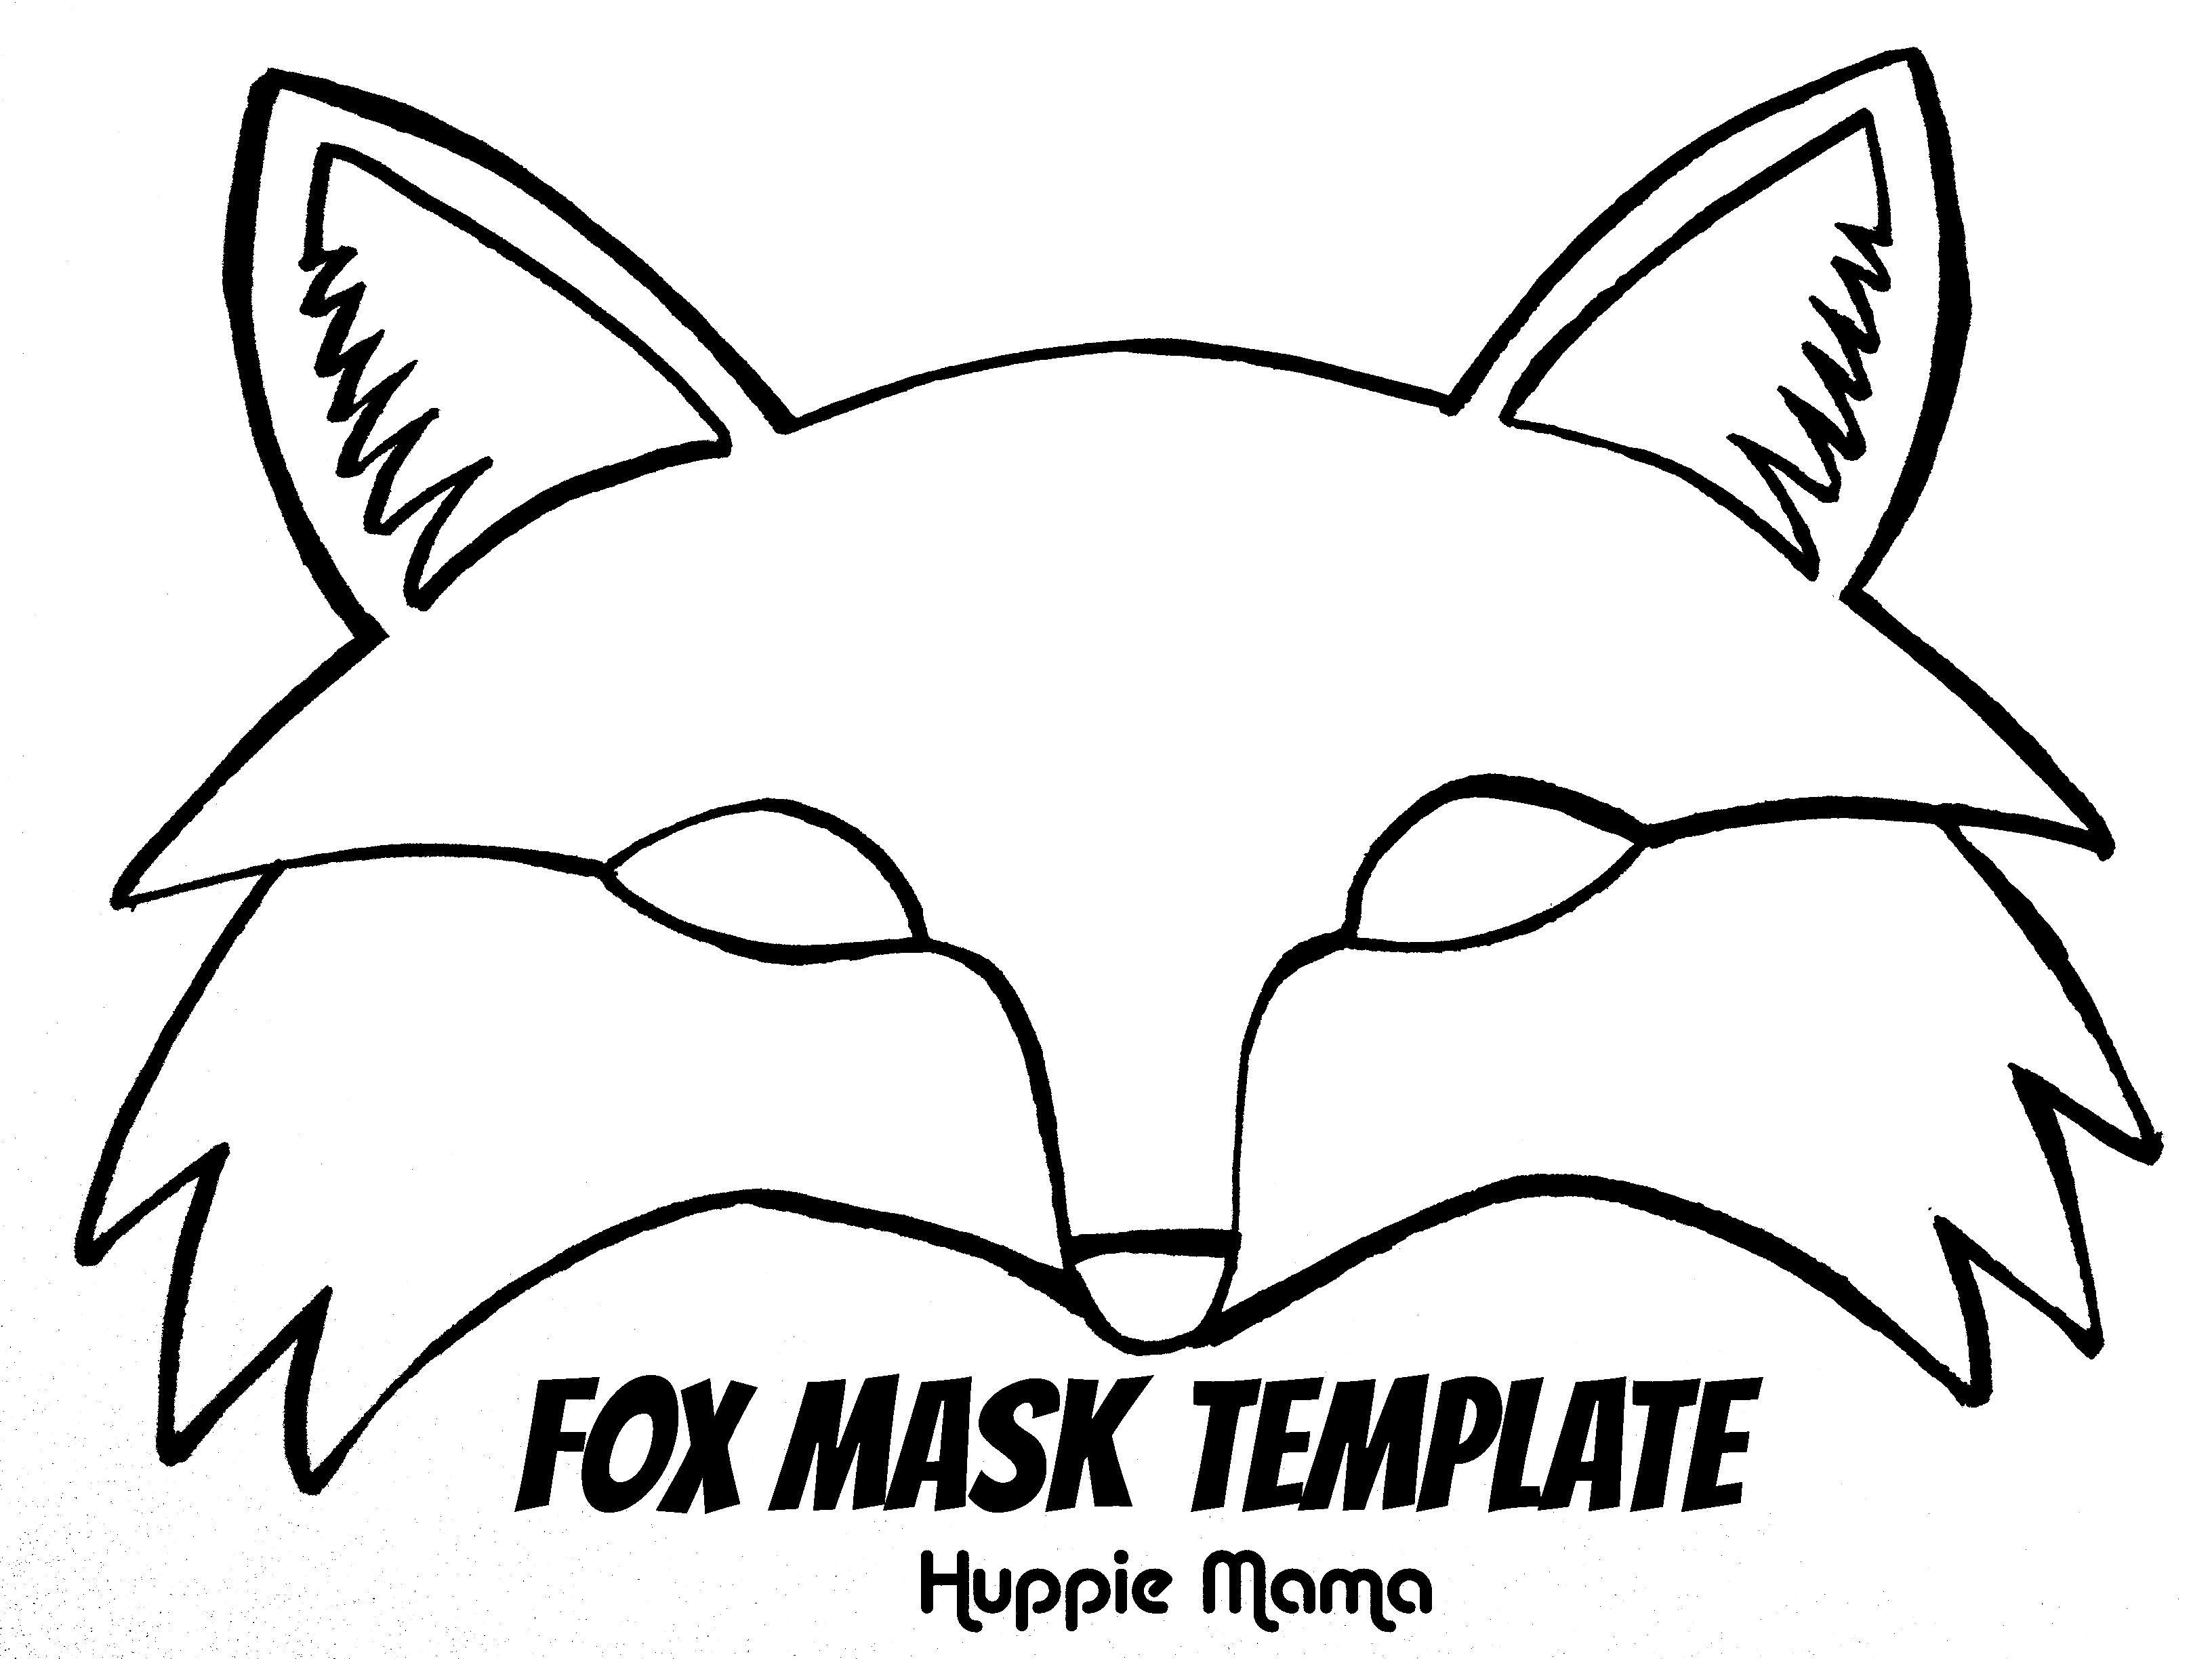 Fox Mask Template Wood Work Mask Template Fox Mask Crafts For Kids